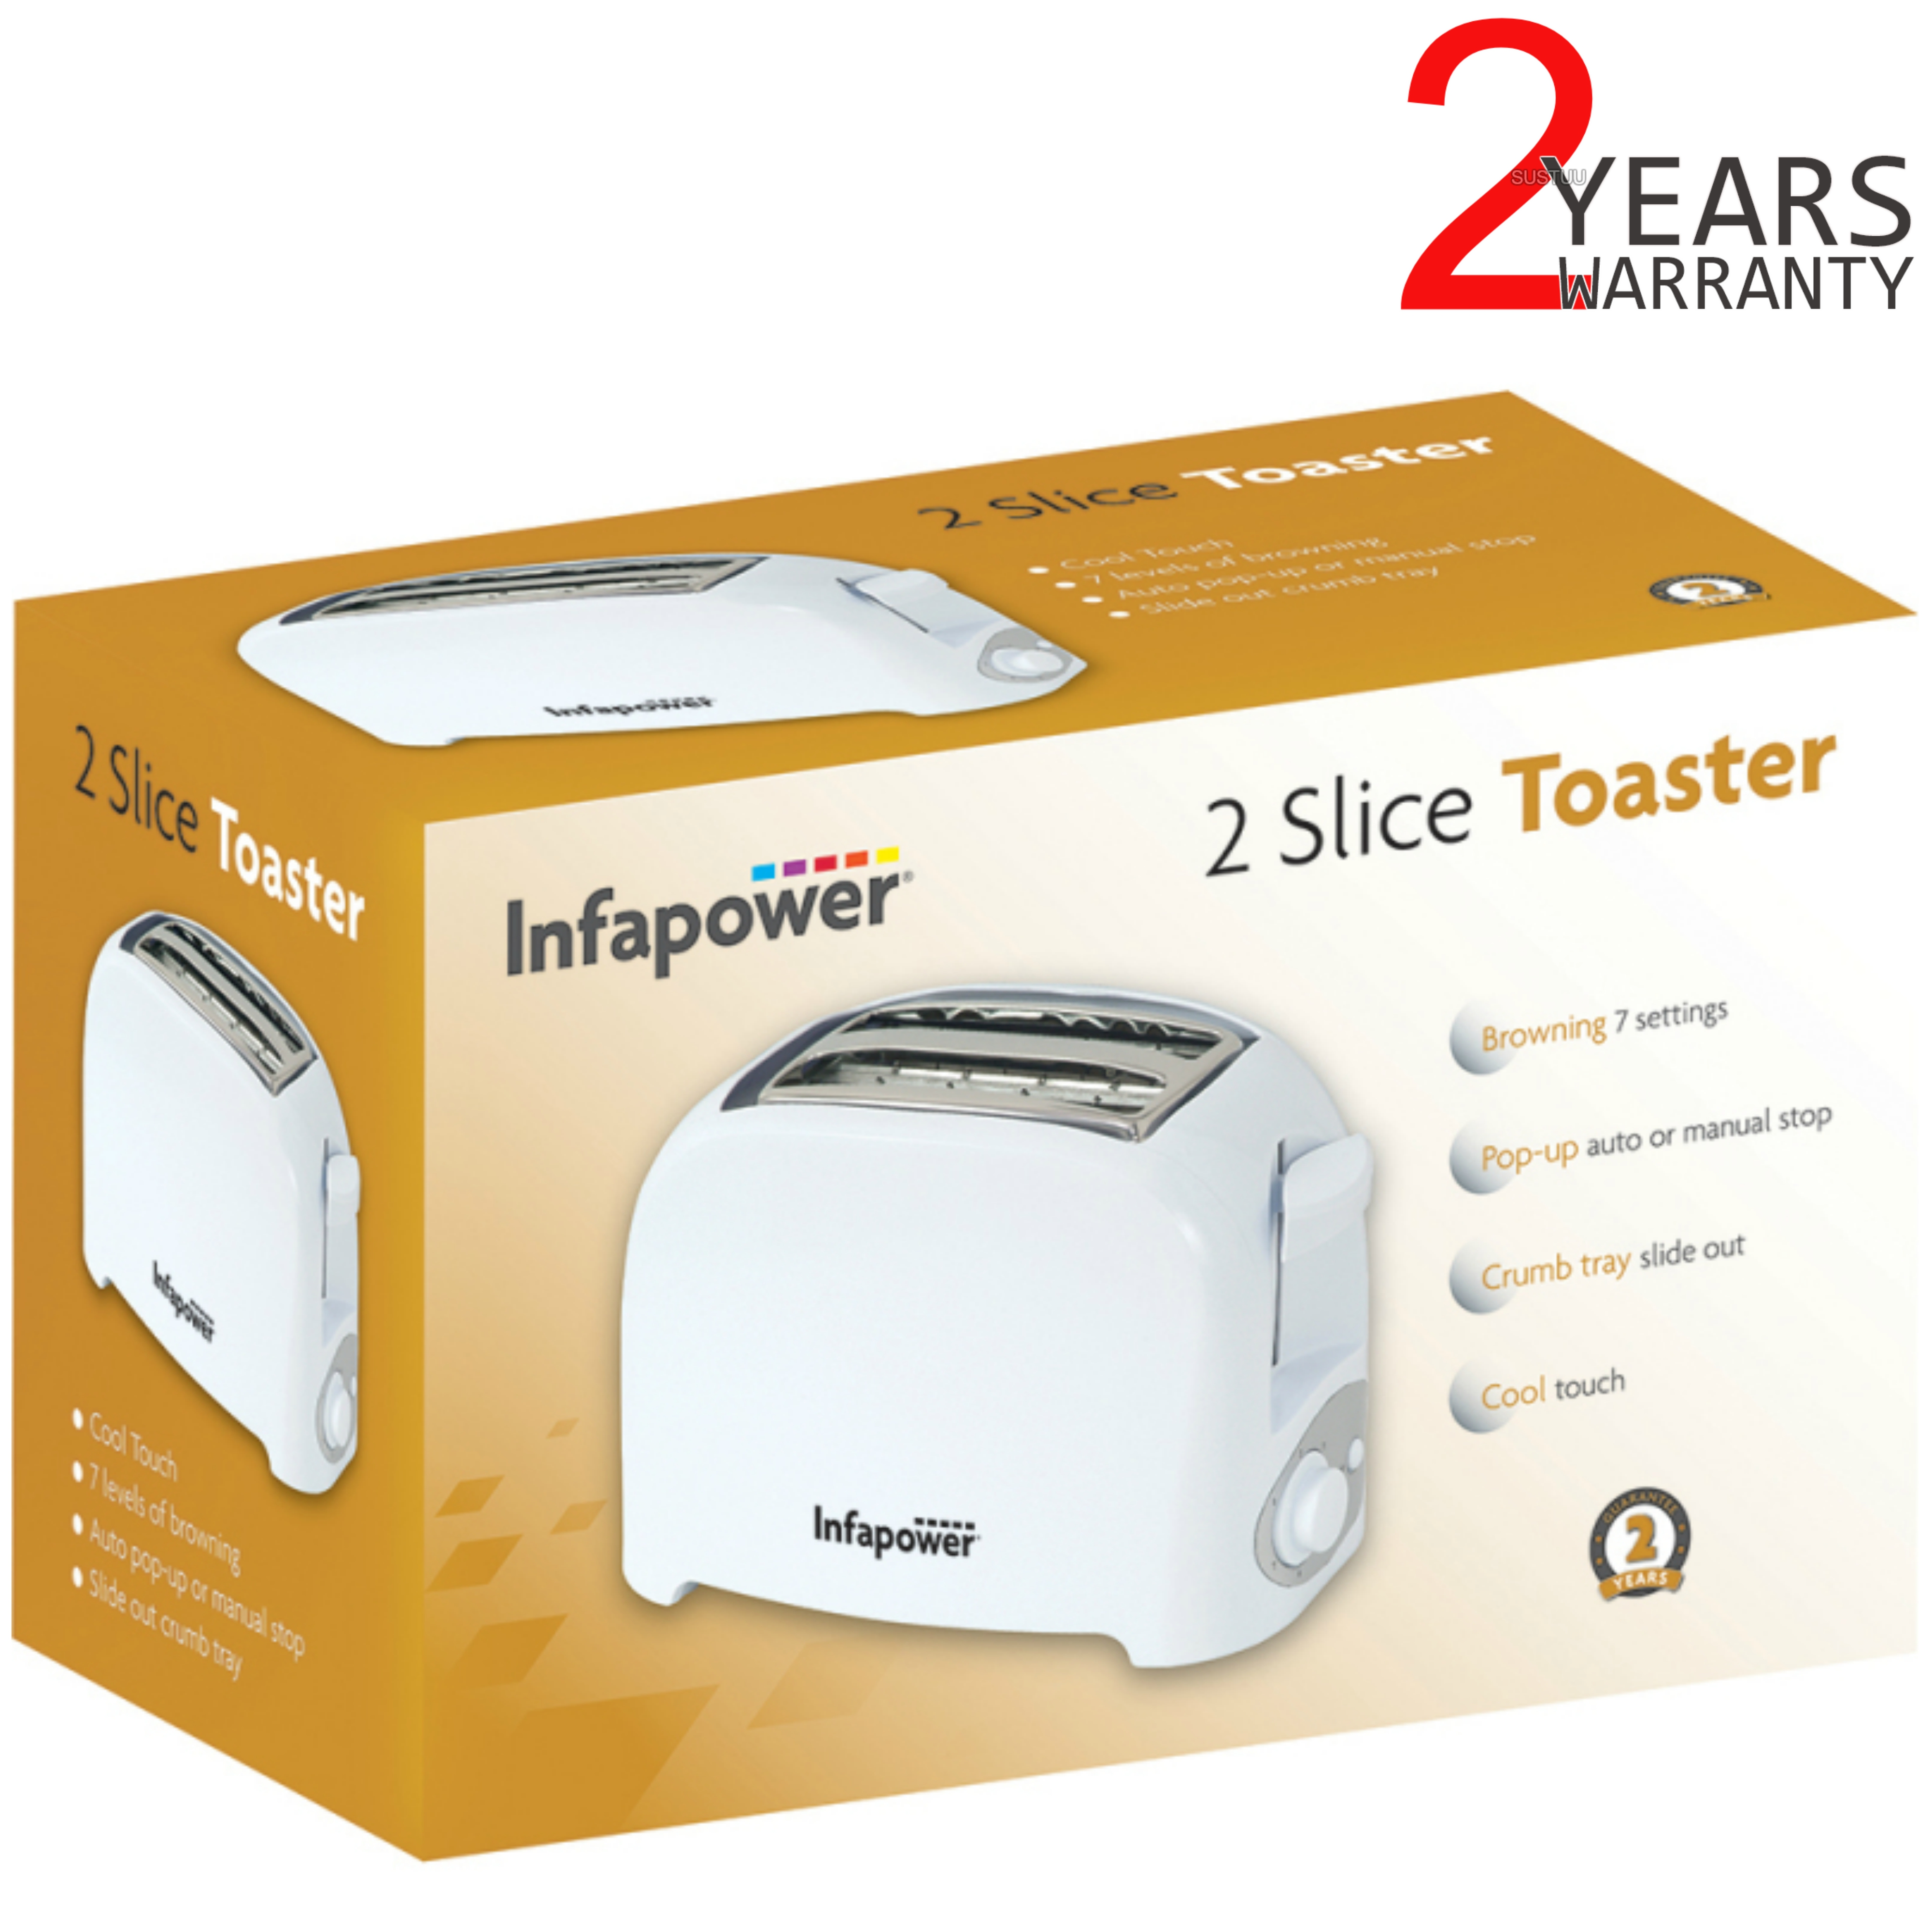 Infapower 2 Slice Toaster | Browning 7 Settings | Auto-Manual Stop | Crumb Tray | White